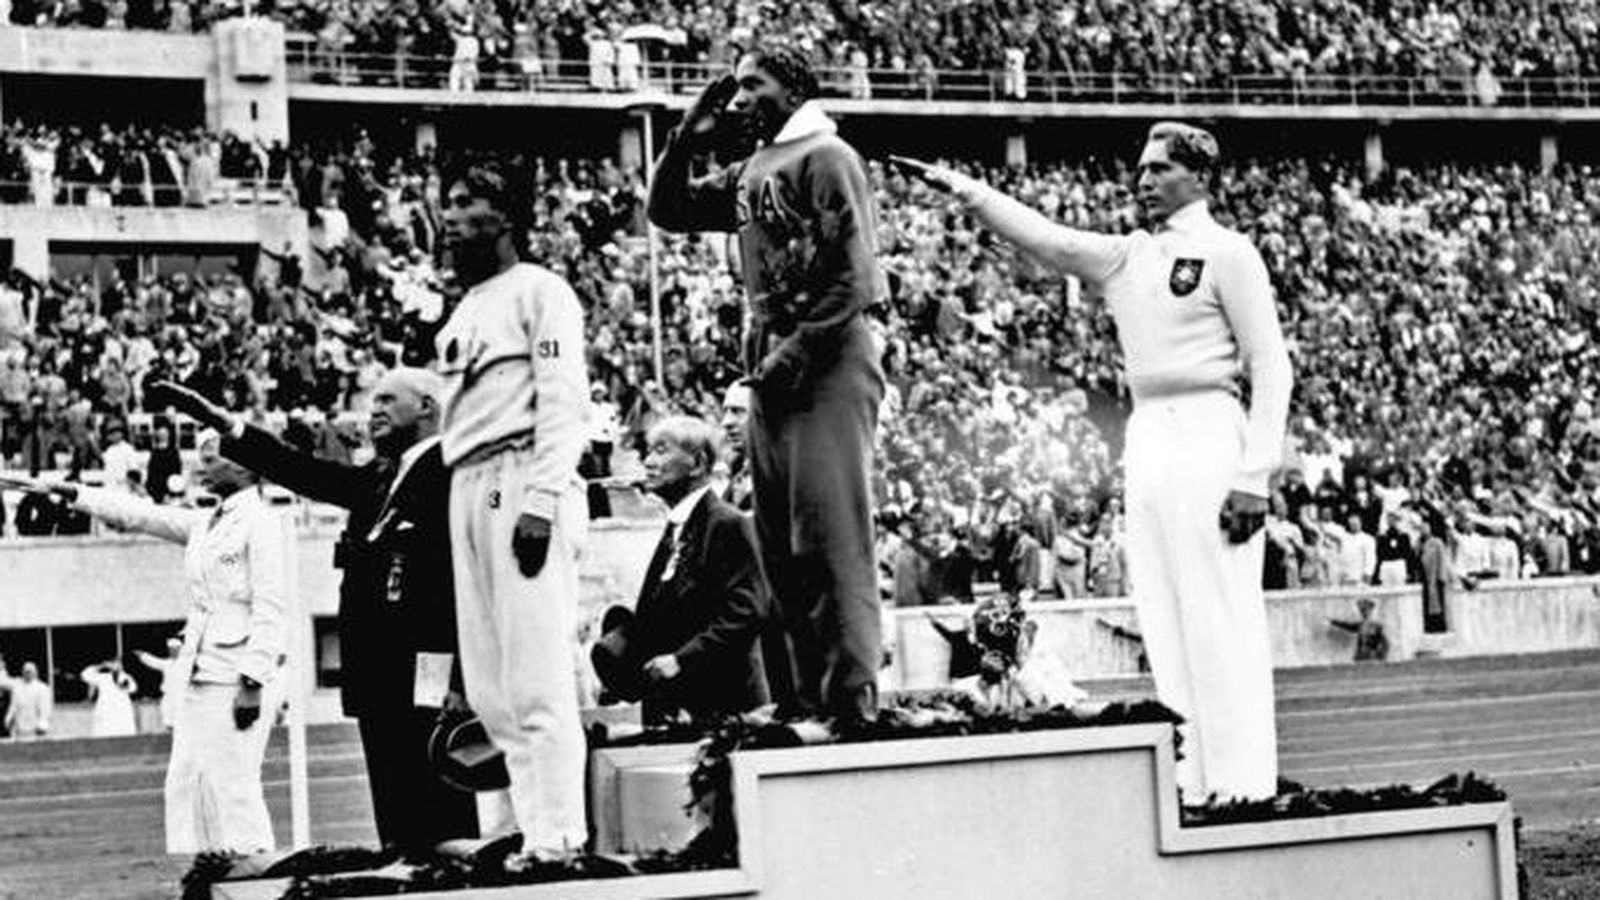 the life of jesse owens The olympics have long been the center of attention in the sports world, but perhaps no moment in the history of the games was as poignant as jesse owens' performance in berlin in 1936.